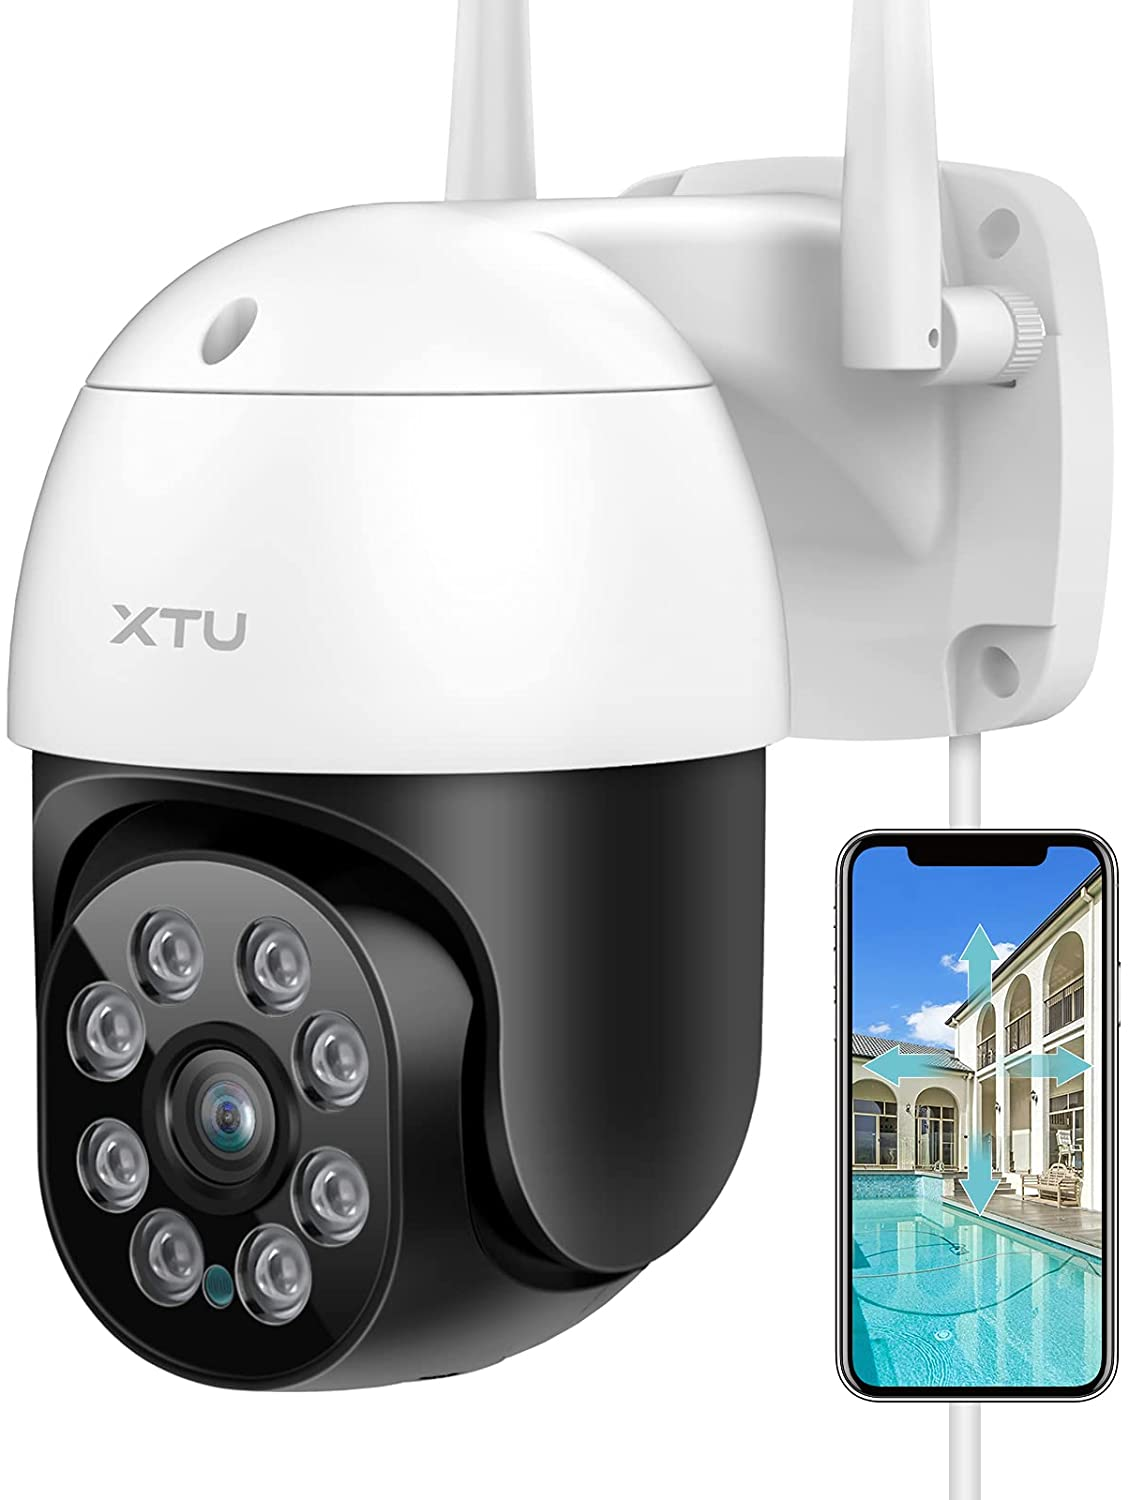 Security Camera Outdoor, XTU 360° View Pan Tilt 2.4G WiFi Outdoor Cameras for Home Security with Mobile App MIPC, Outside IP Surveillance Cameras with Night Vision, Motion Detection, Works with Alexa